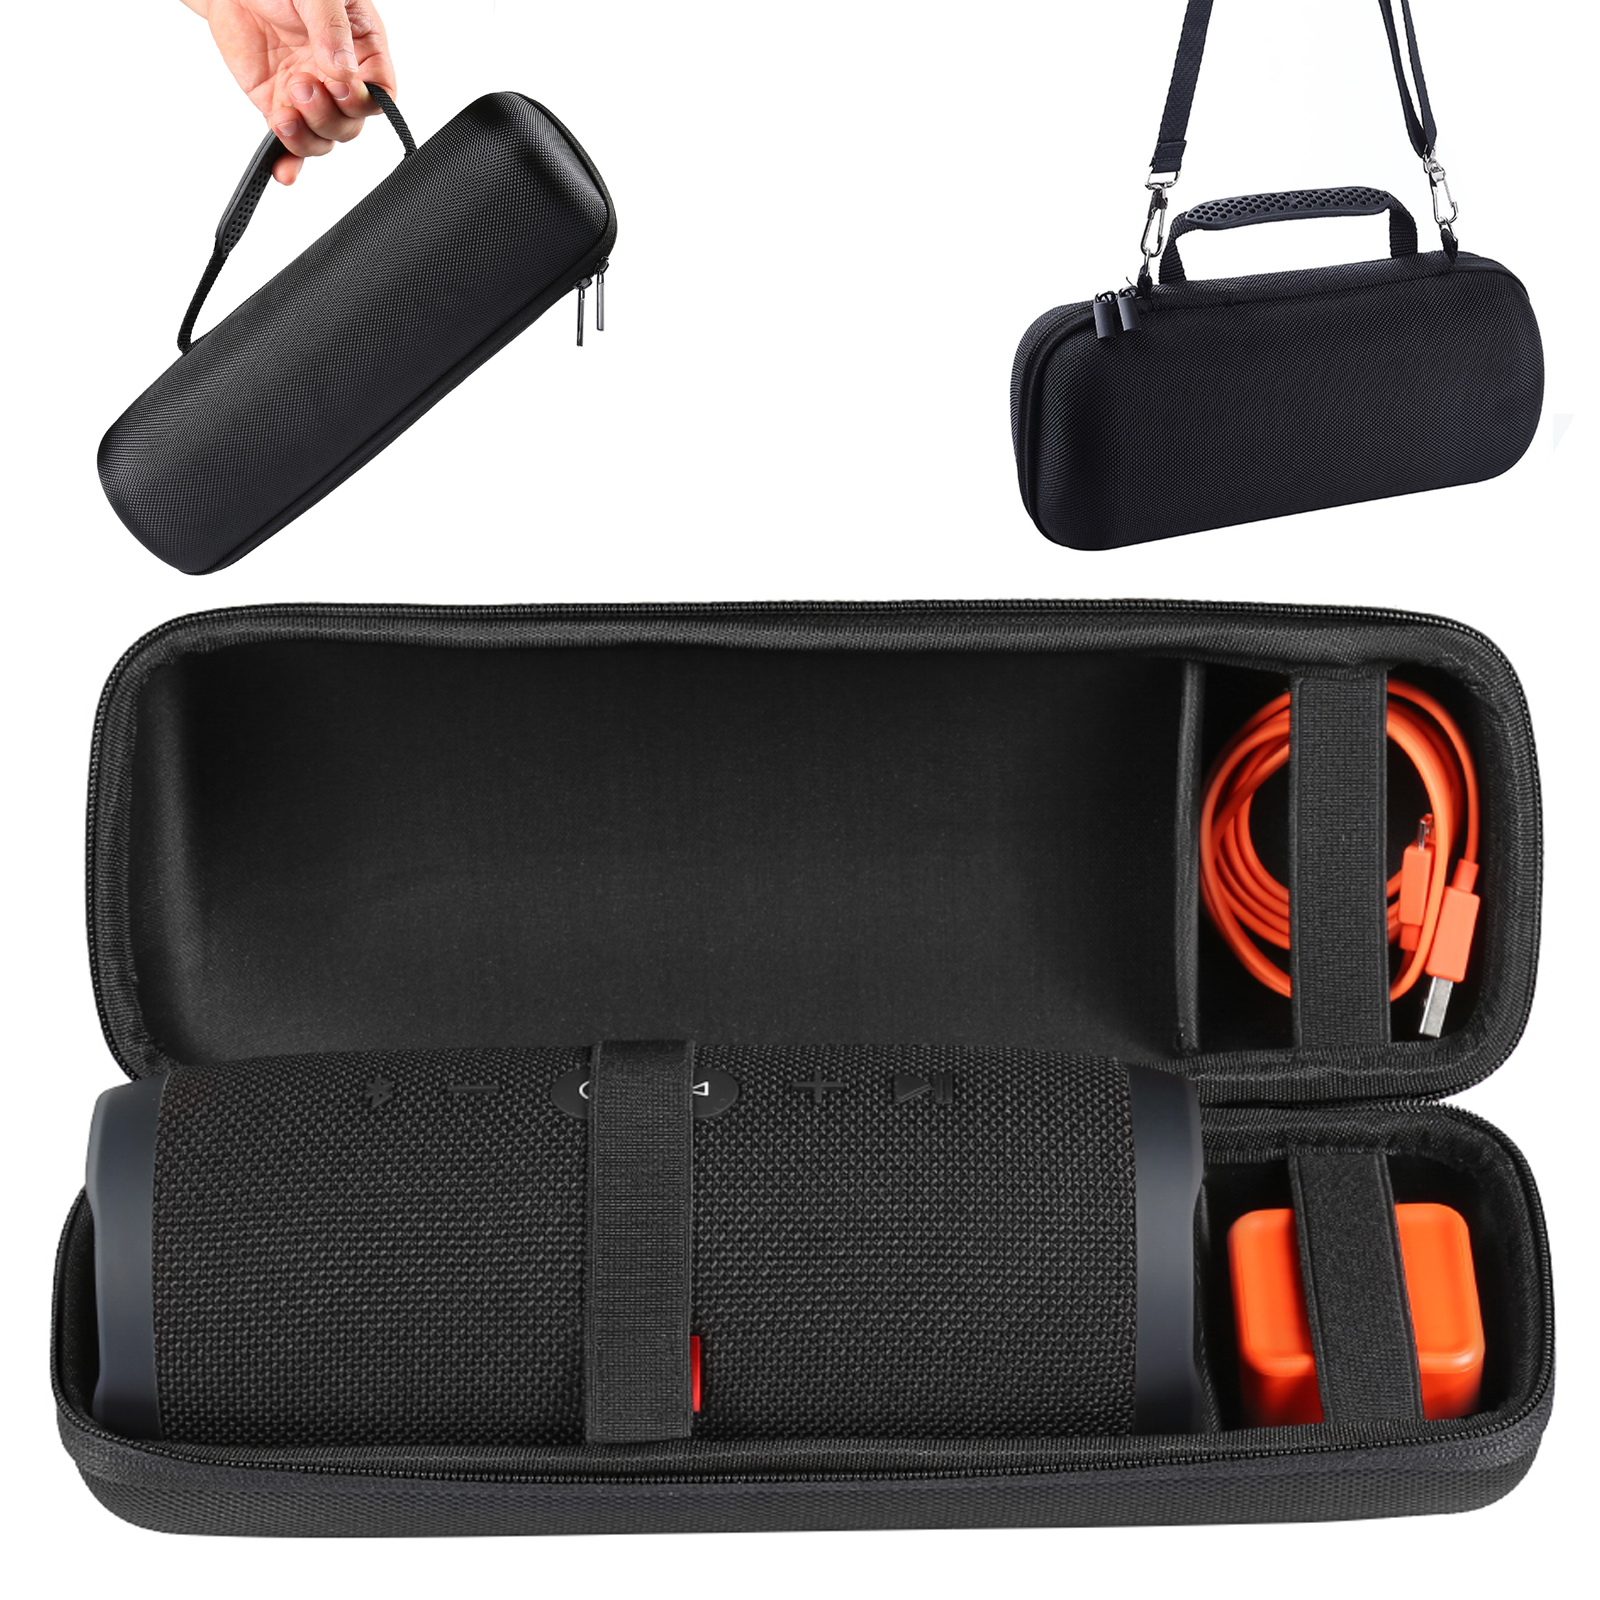 EVA Waterproof Hard Travel Carrying Case Storage Bag for JBL Charge 3 Bluetooth Wireless Speaker Fit USB Cable and Charger